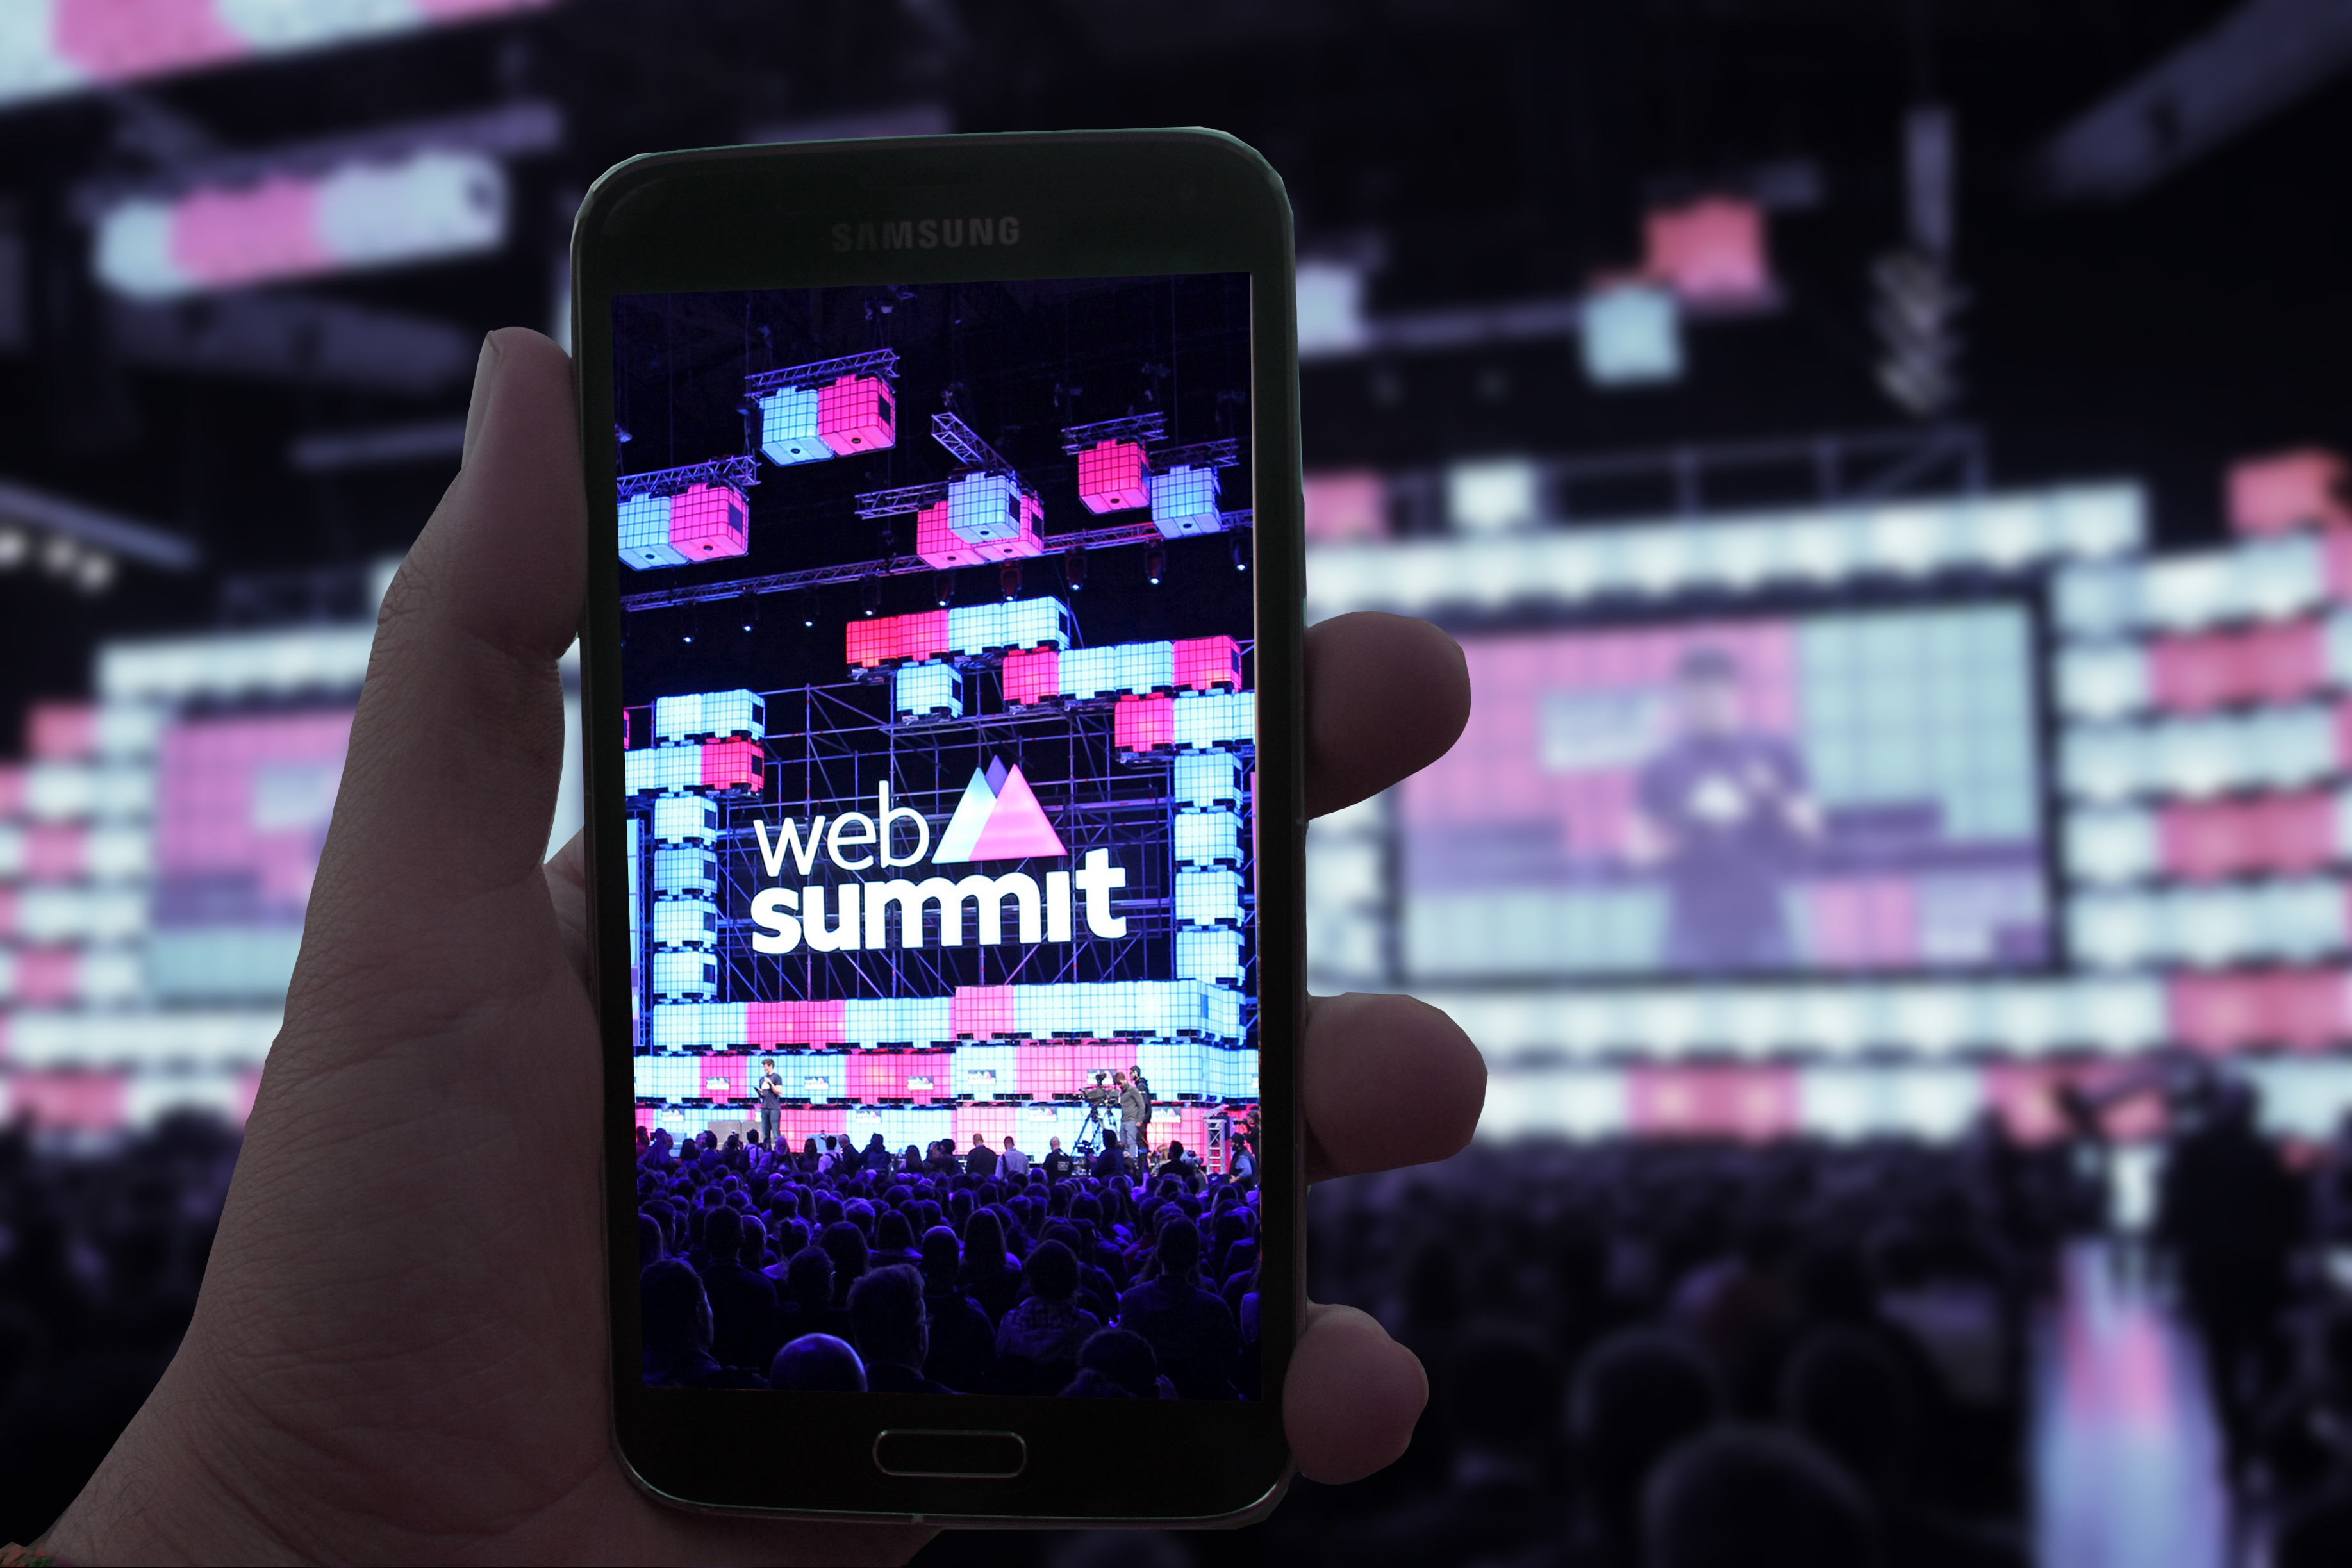 The next Web Summit will happen in Lisbon and Luís Figo is one of the speakers